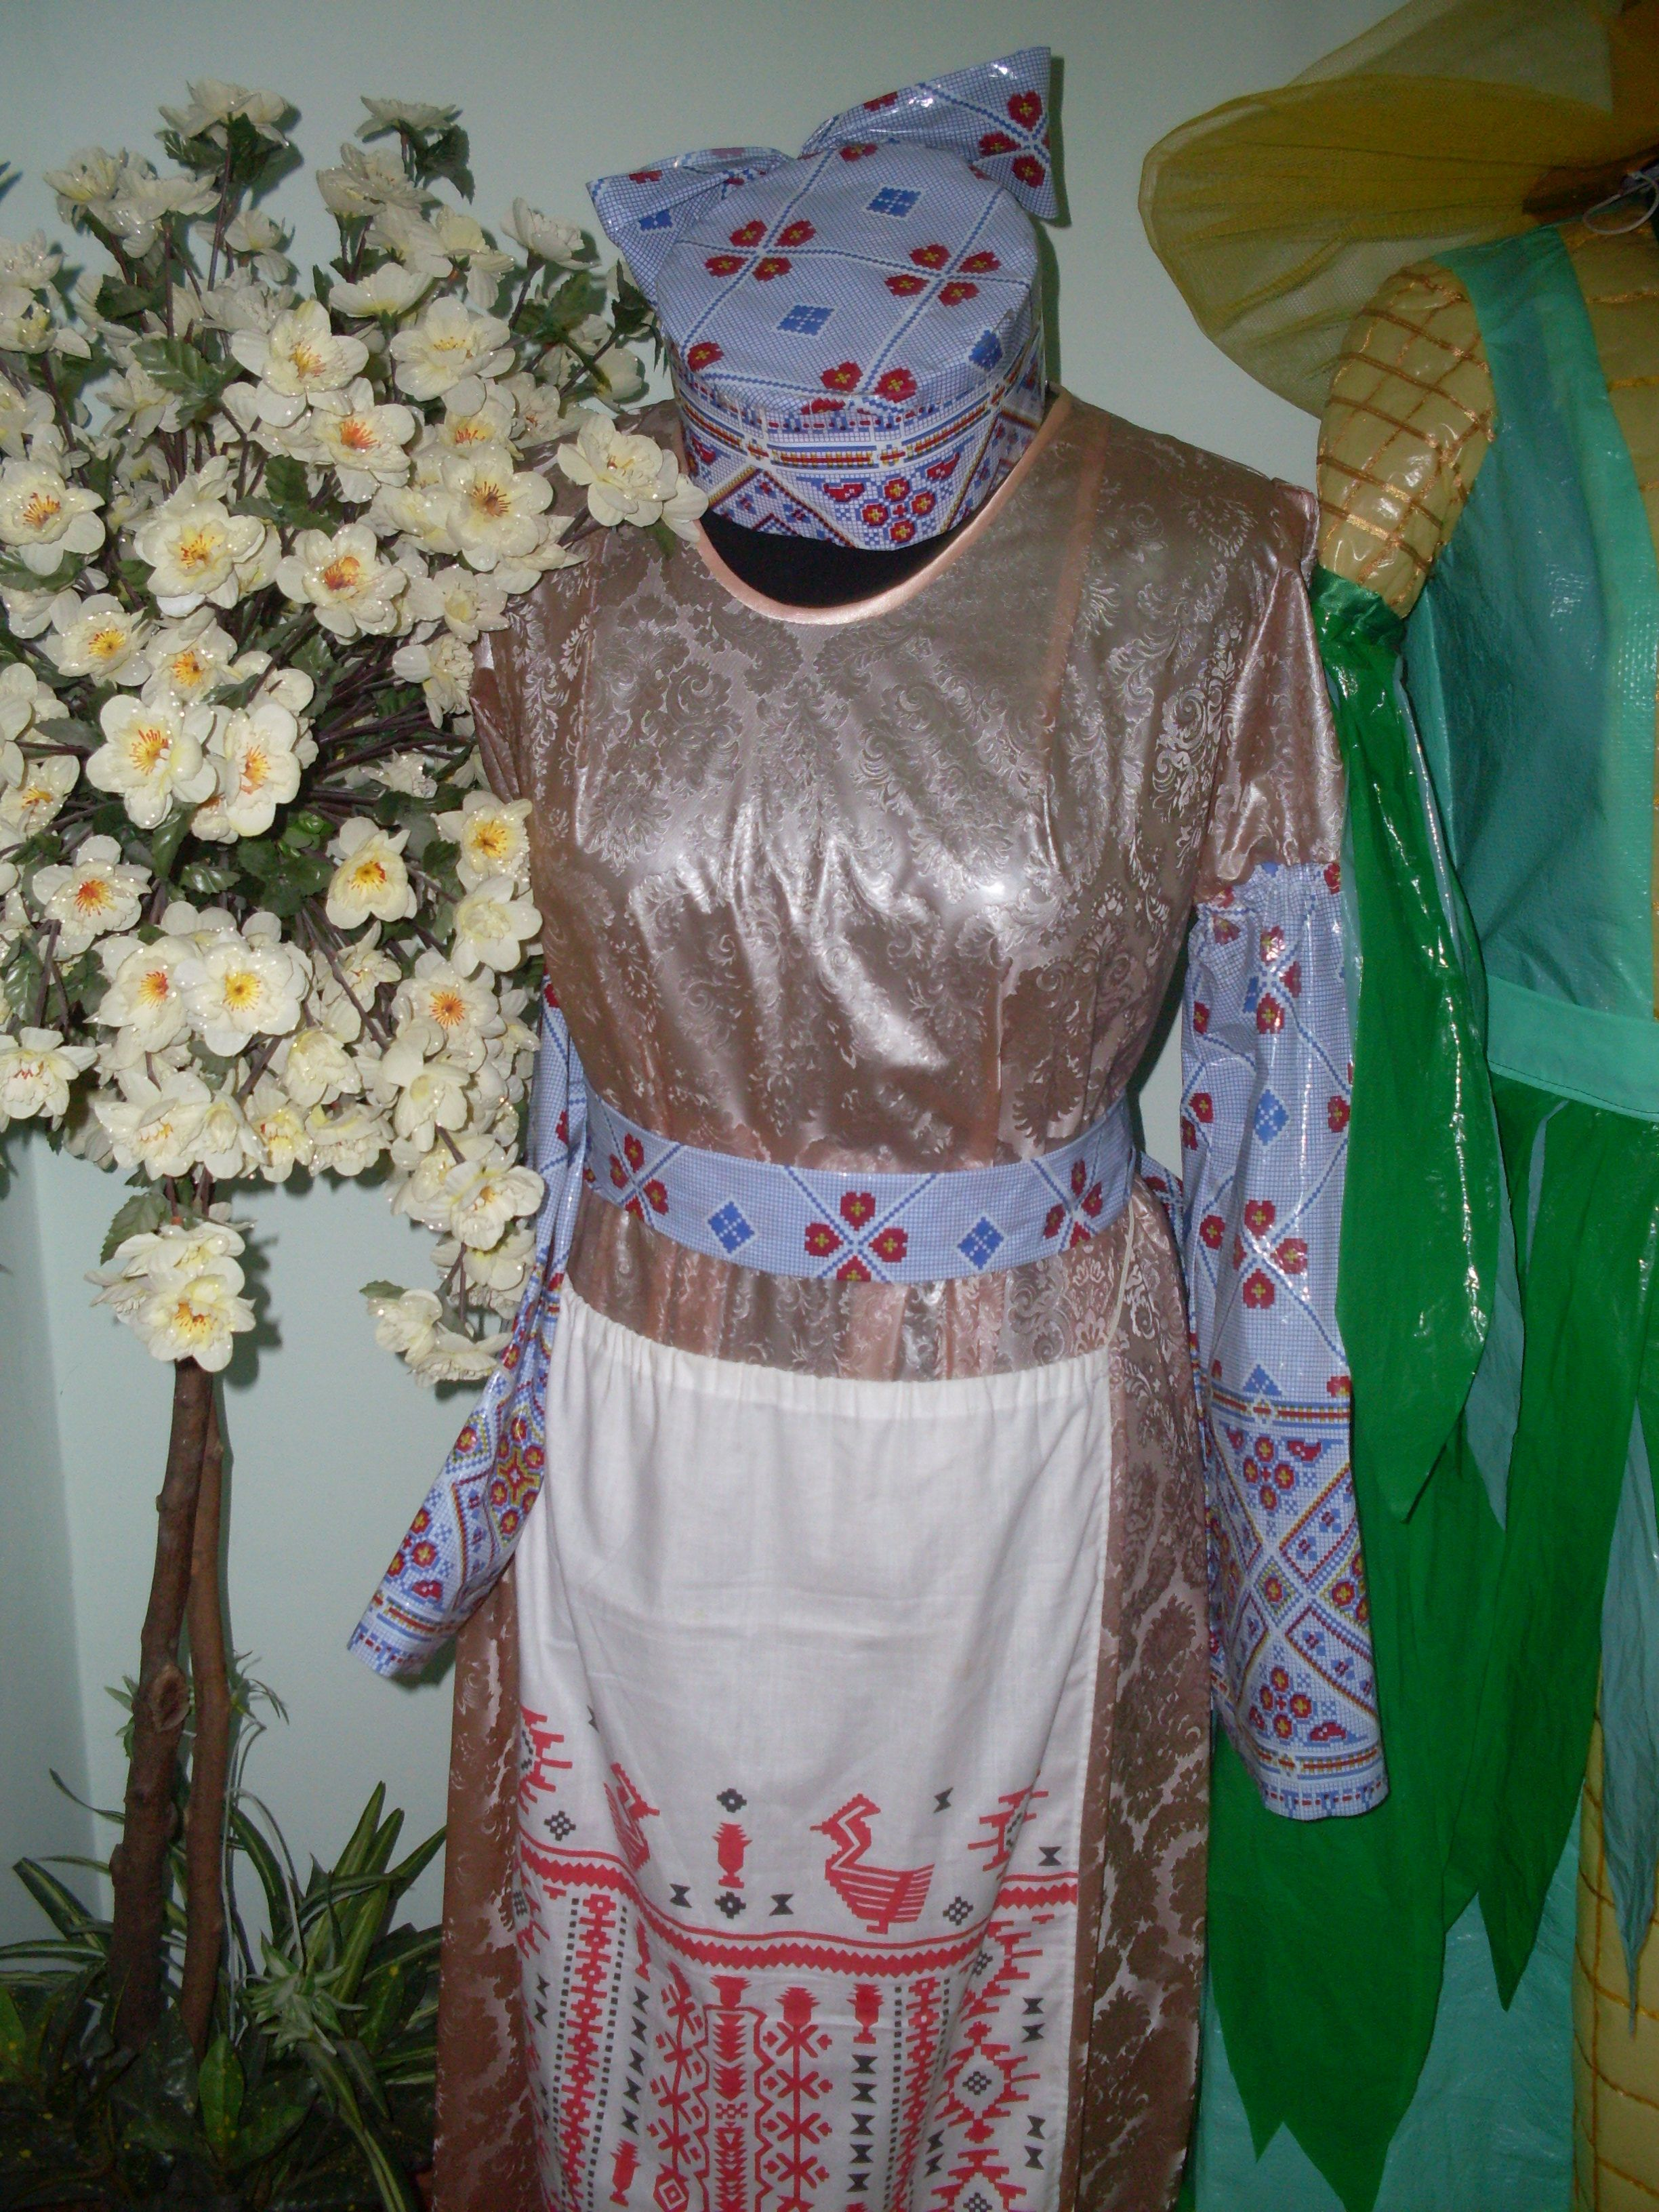 A more traditional dress.